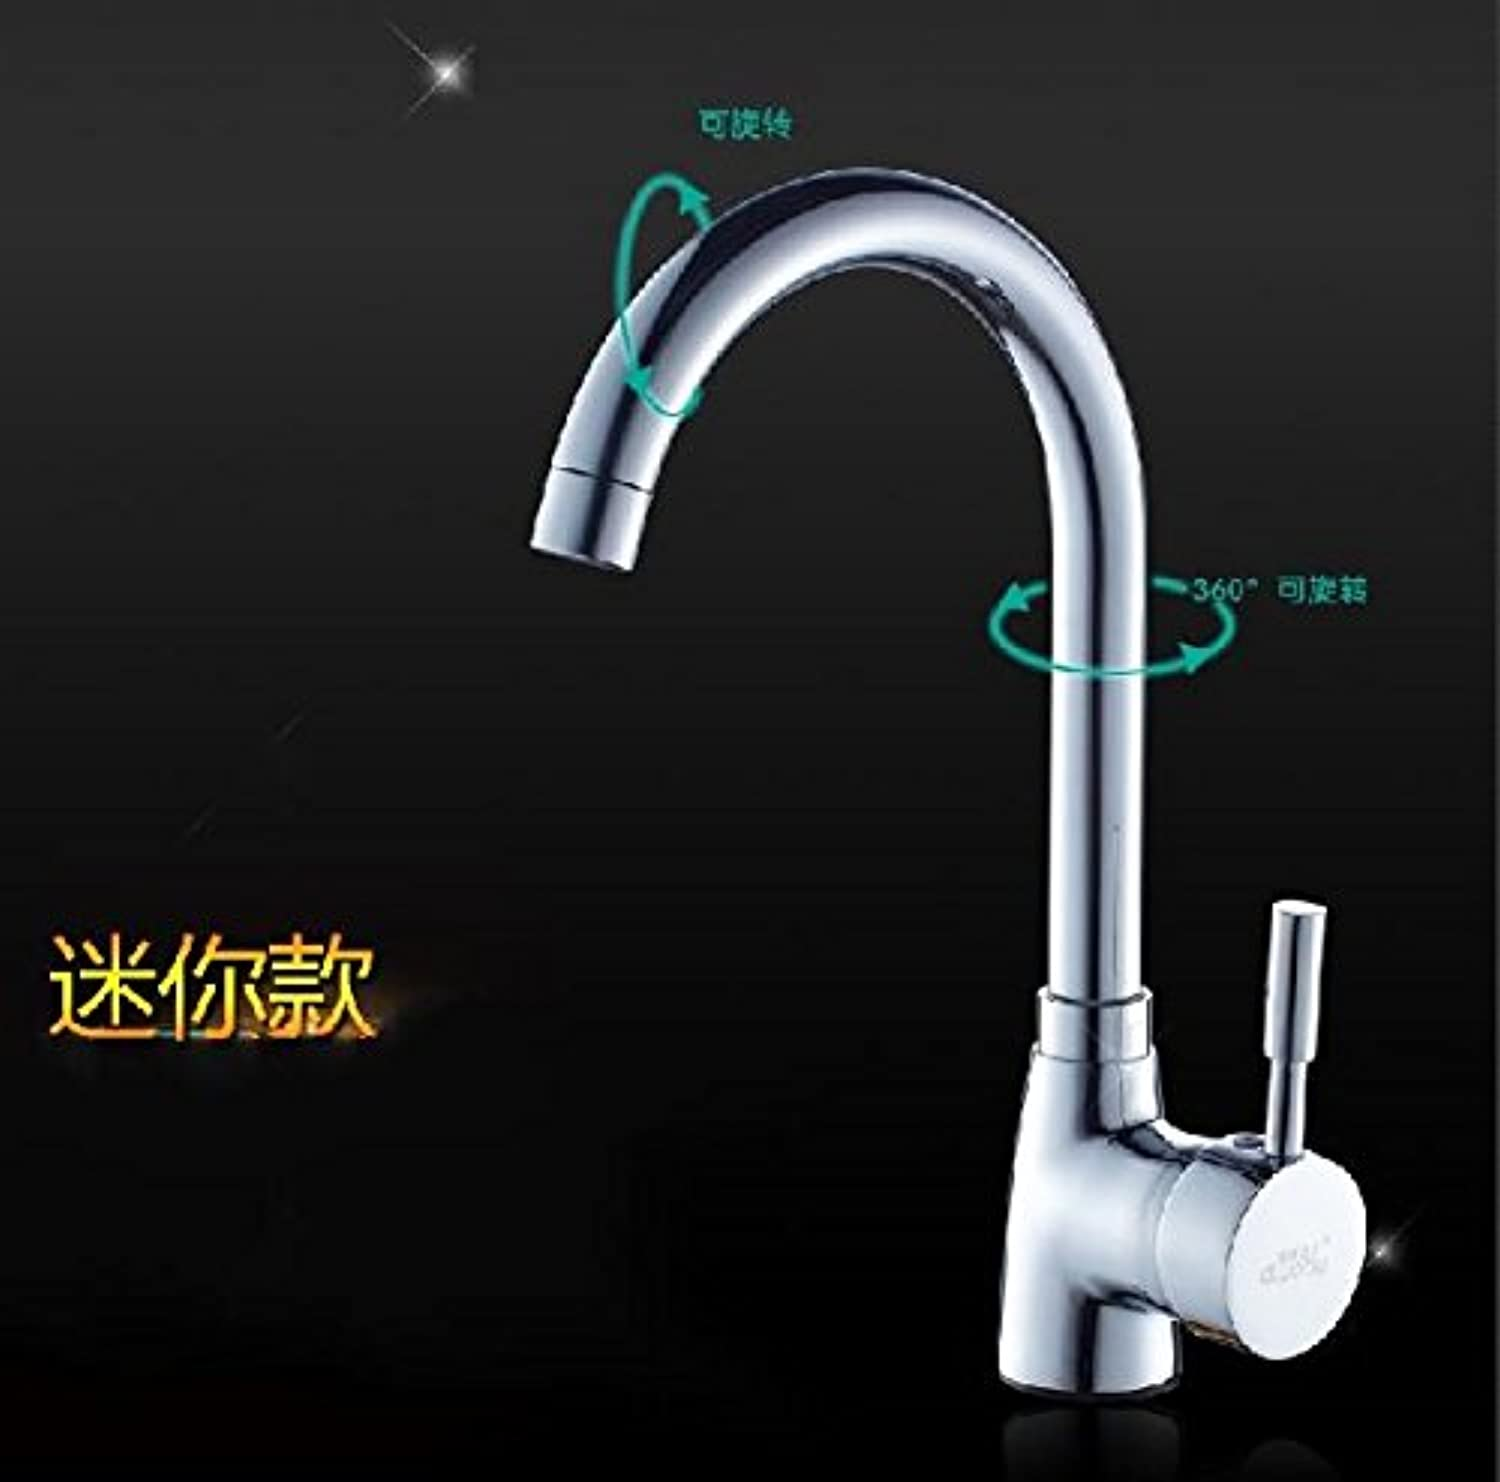 JWLT European style faucet hot and cold basin, copper kitchen sink, washbasin, washing basin, faucet redation,Mini - no hose